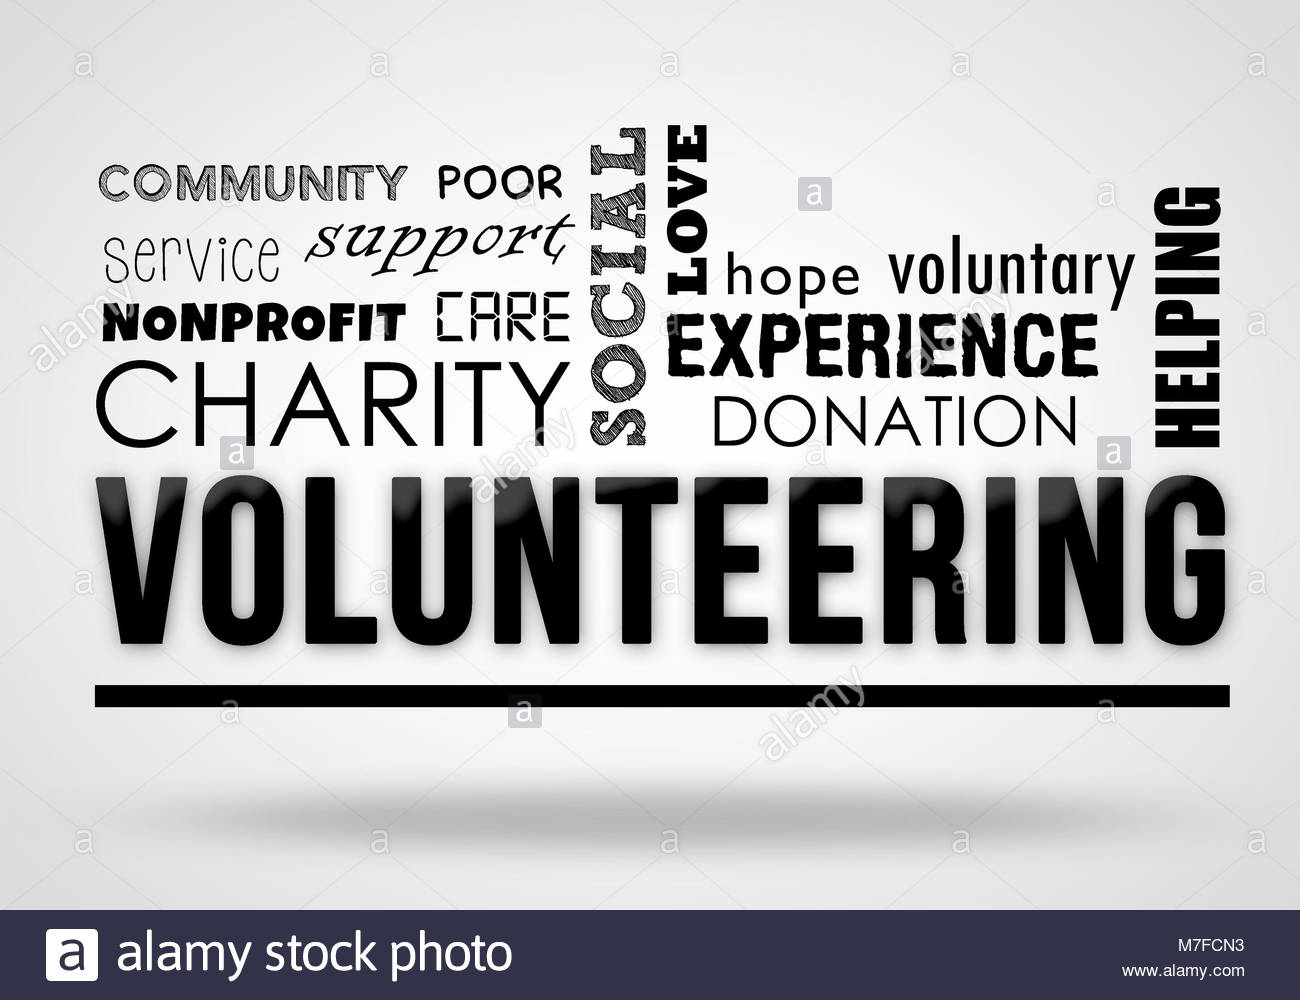 Volunteering - collage concept - Stock Image